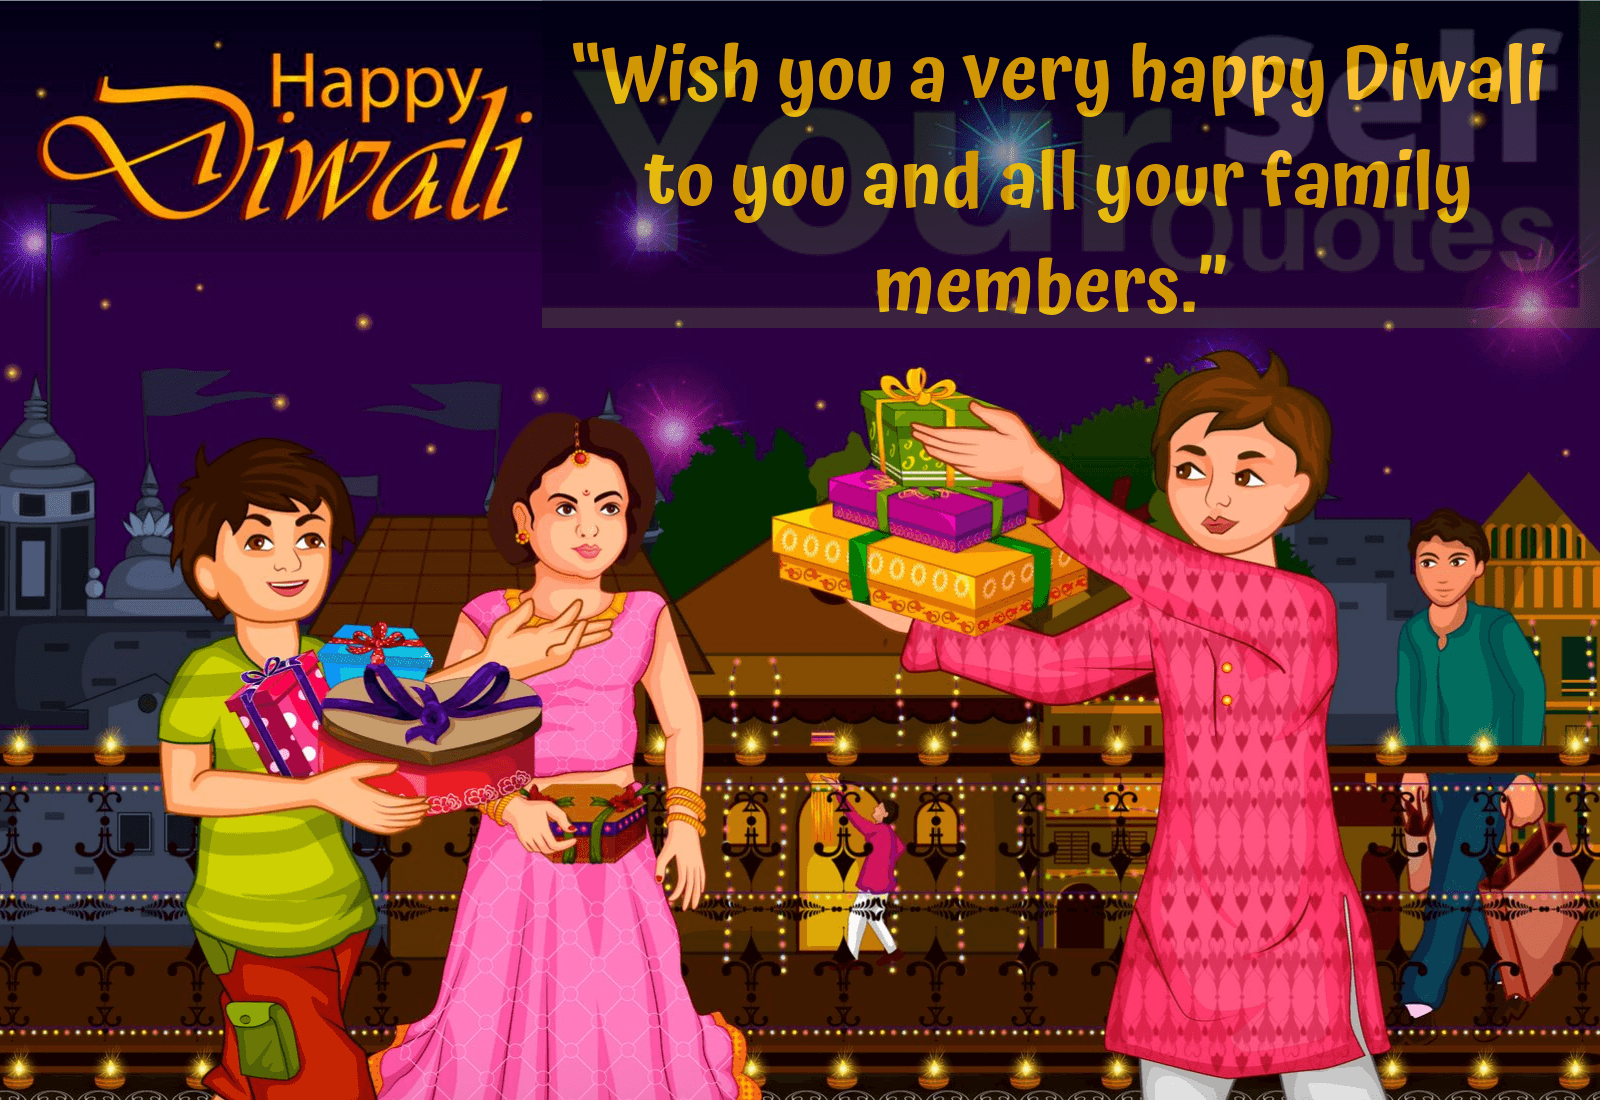 Happy Diwali Wishes Images For Family